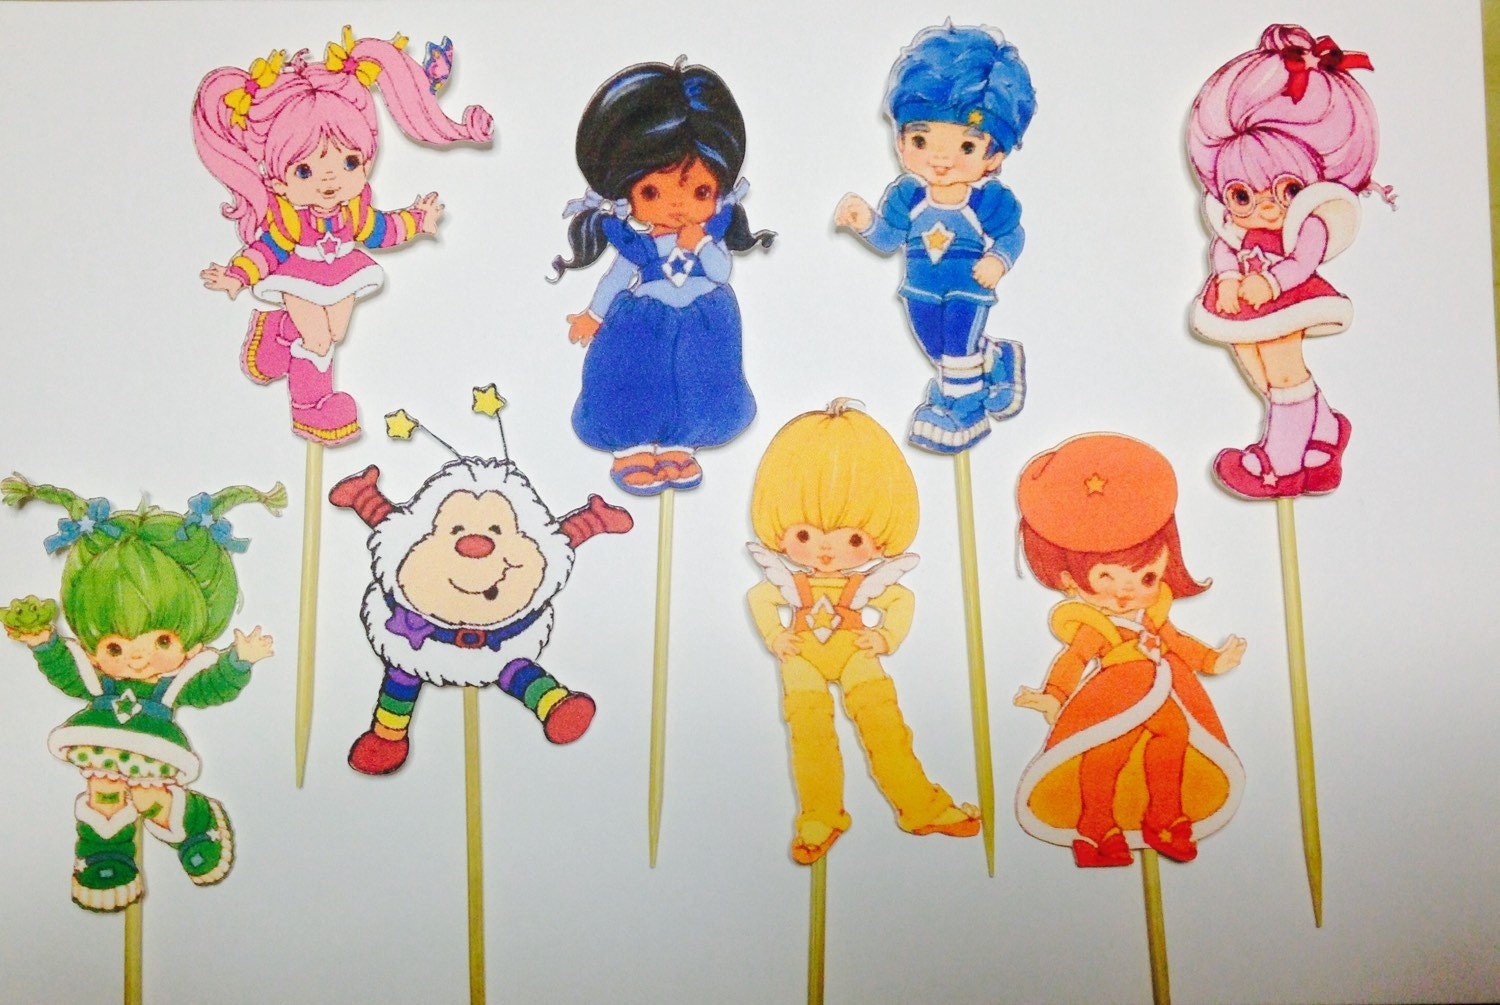 Rainbow brite cake/cupcake toppers by Elizassweetboutique on Etsy